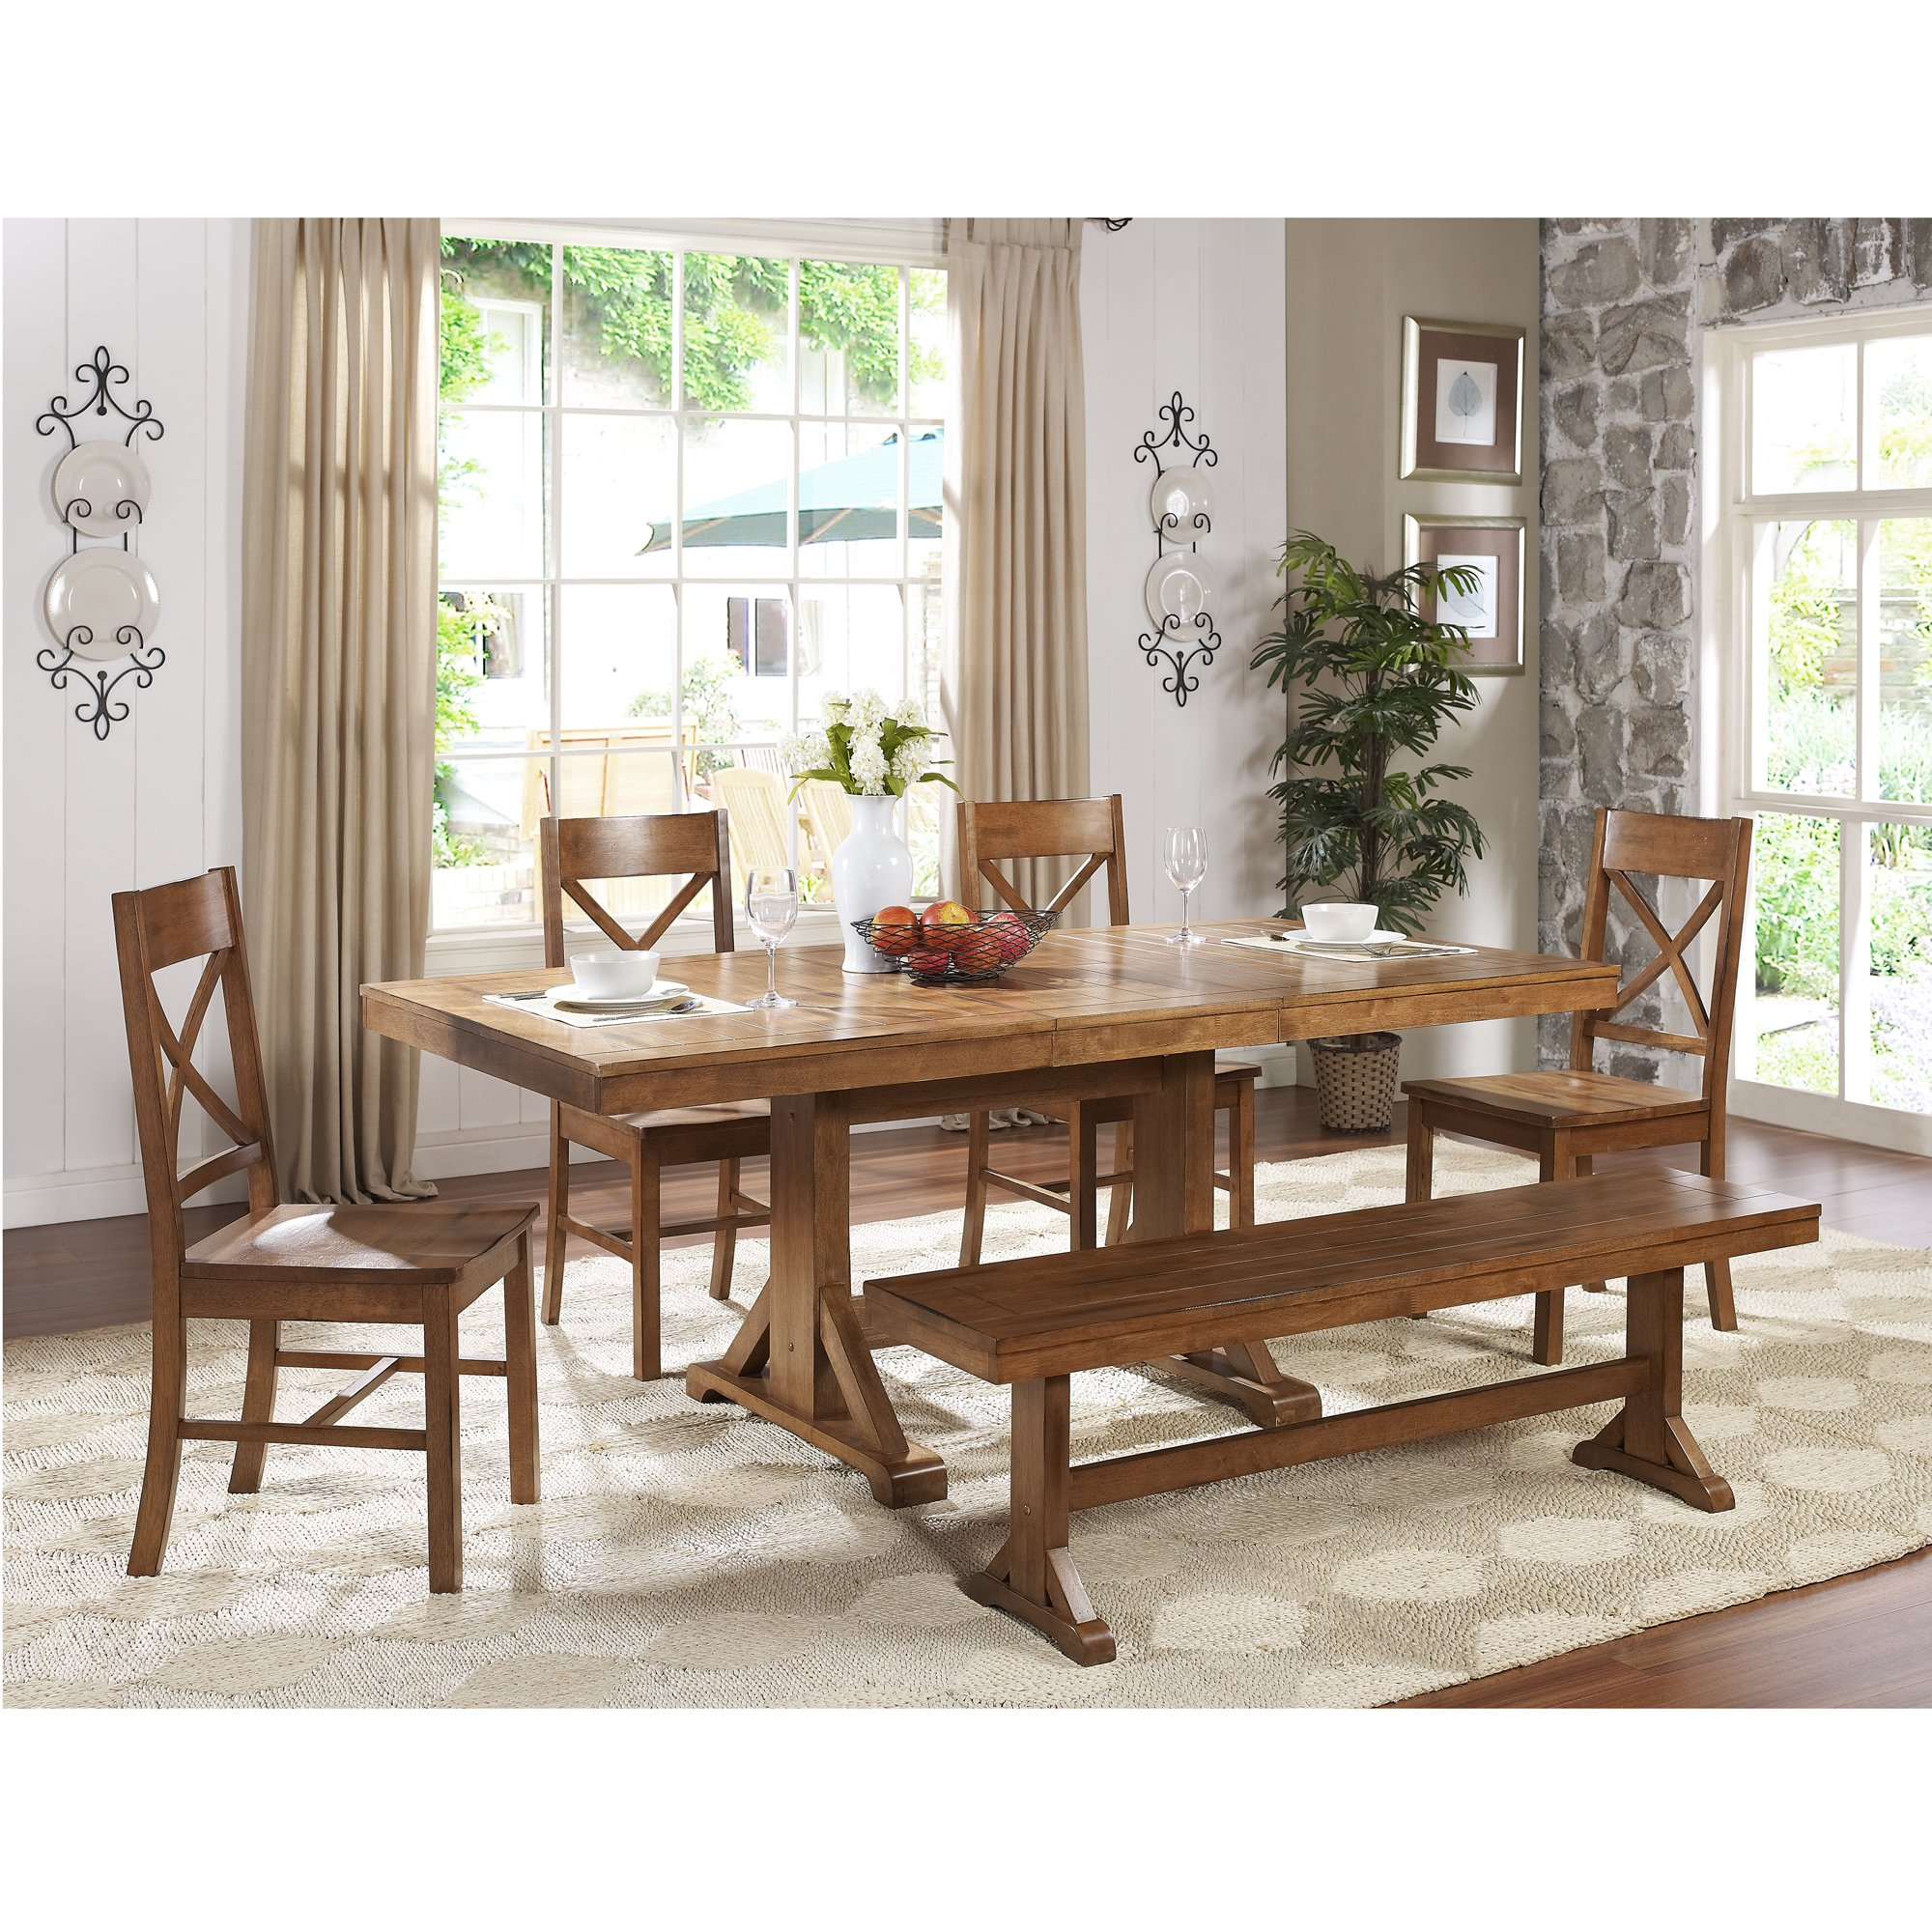 WE Furniture Solid Wood Brown Dining Bench by WE Furniture (Image #3)